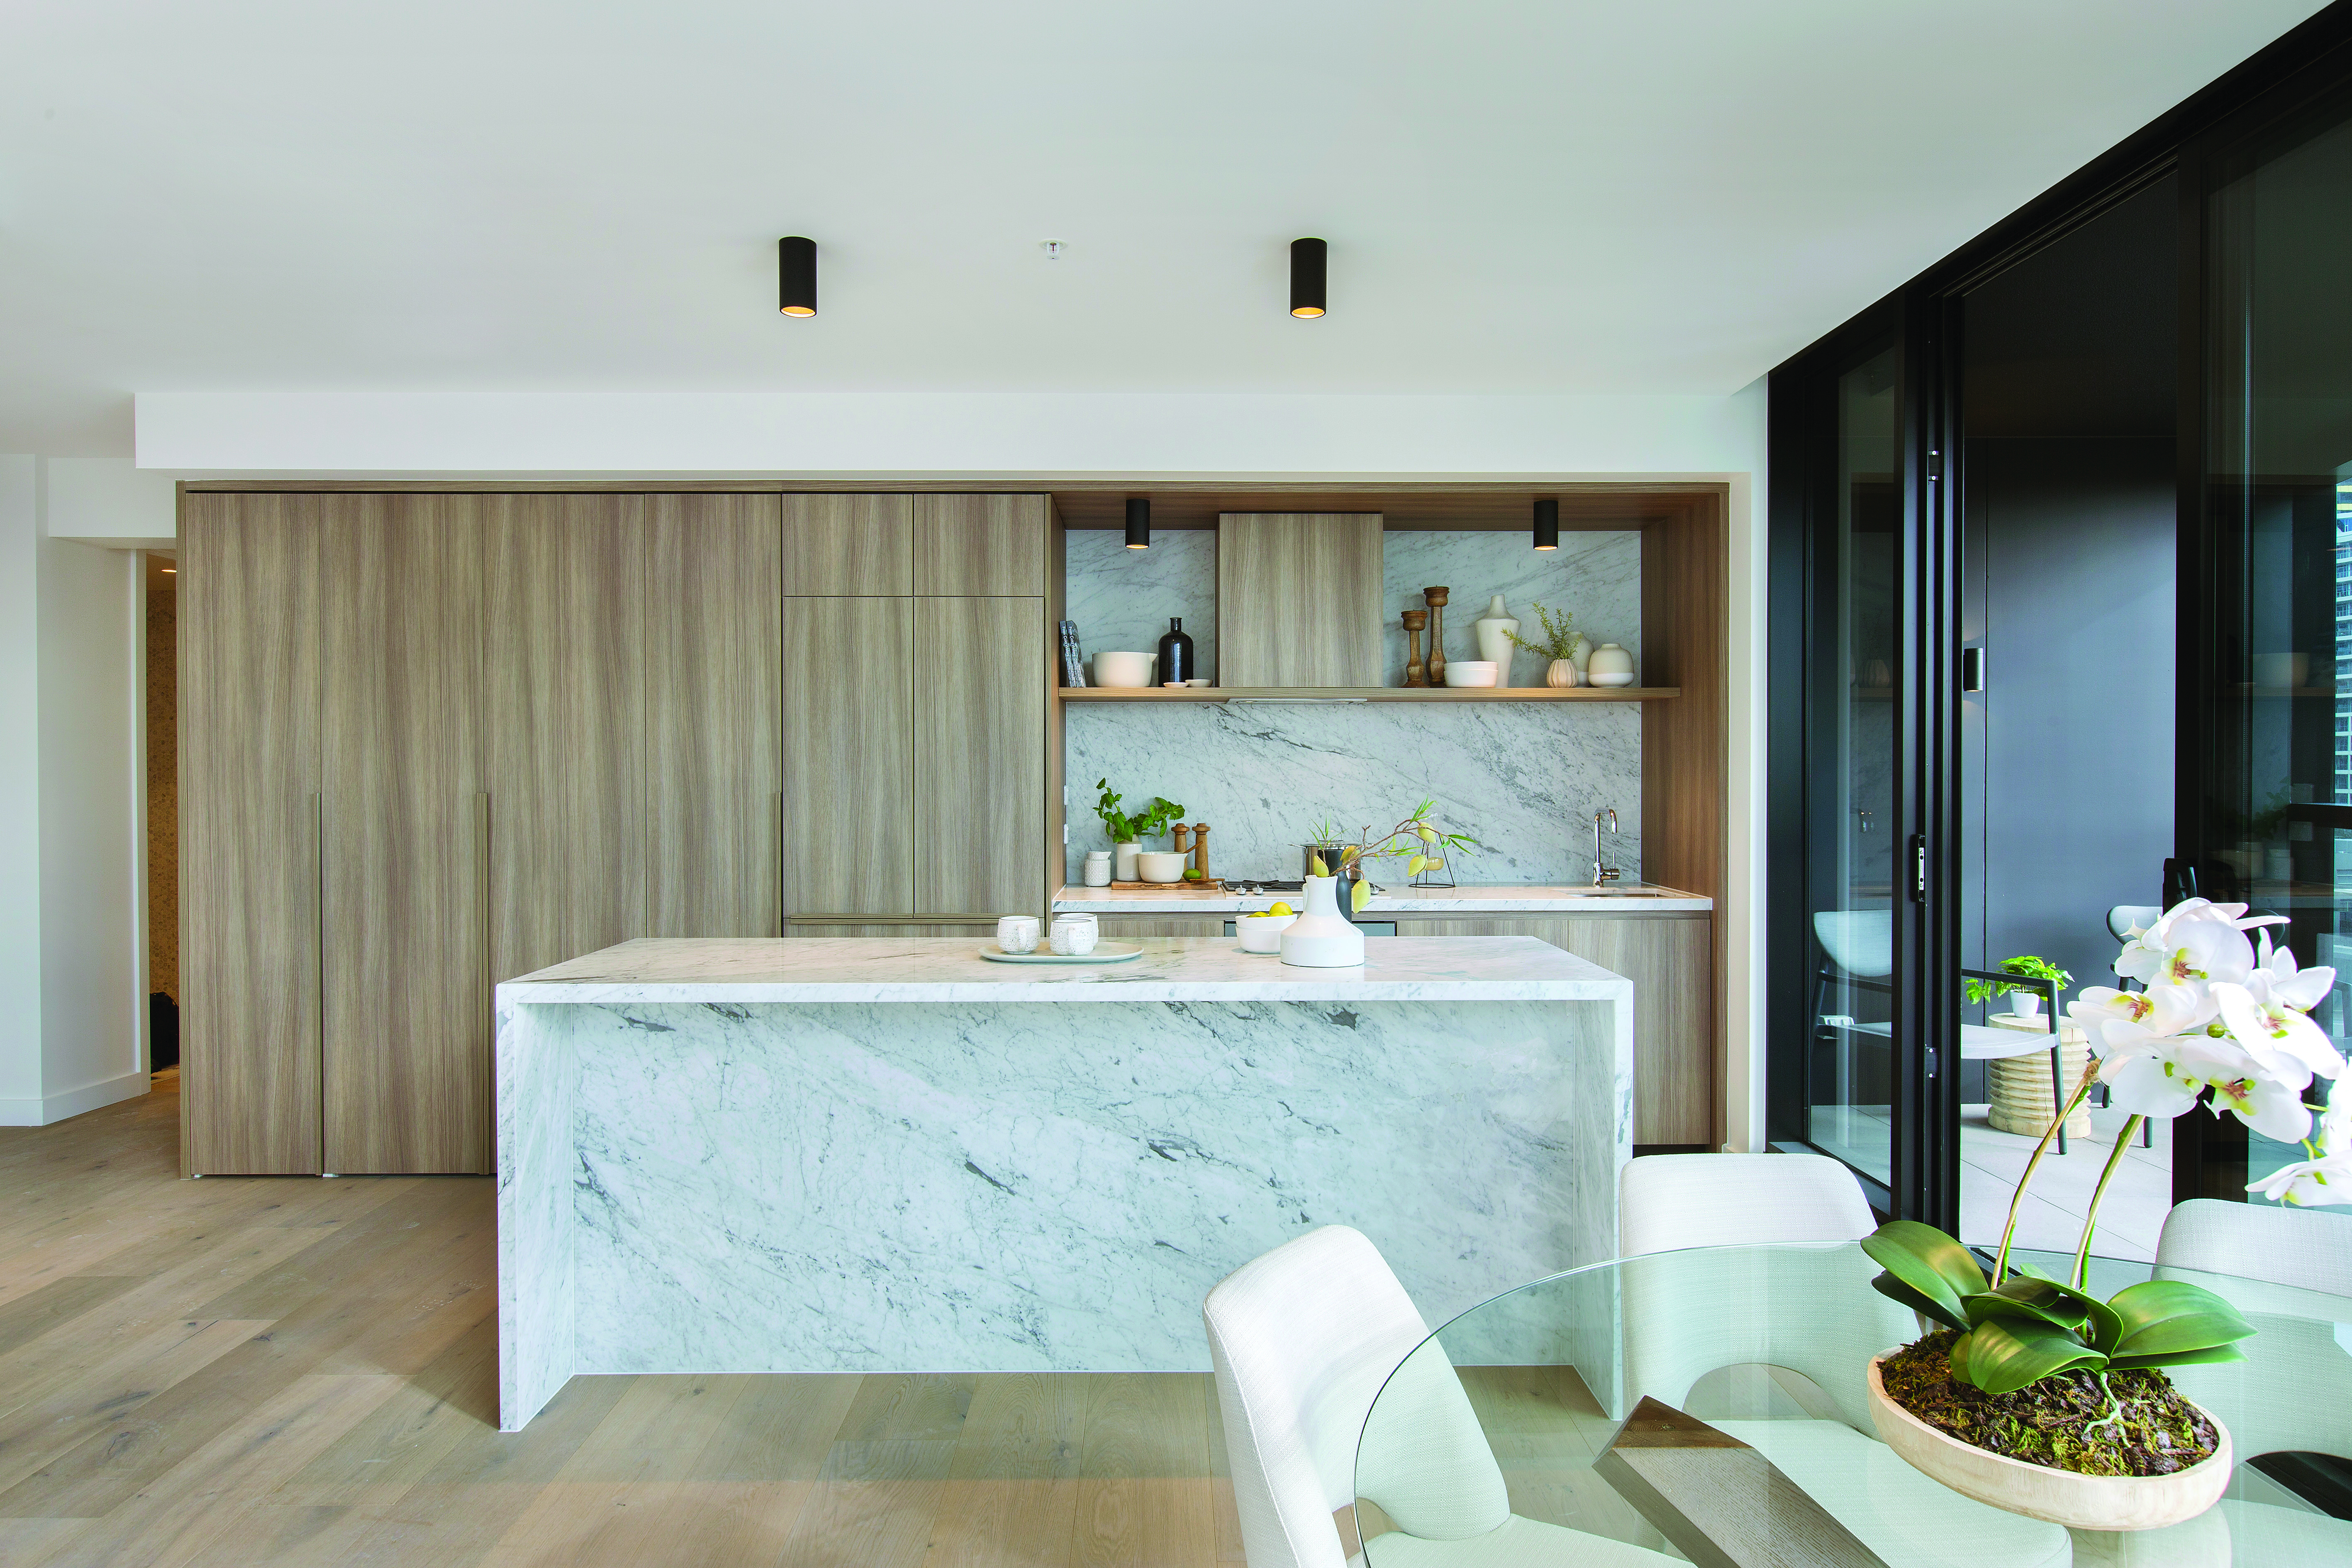 661 Chapel street penthouse Melbourne Apartments and developments kitchen marble island timber balcony terrace